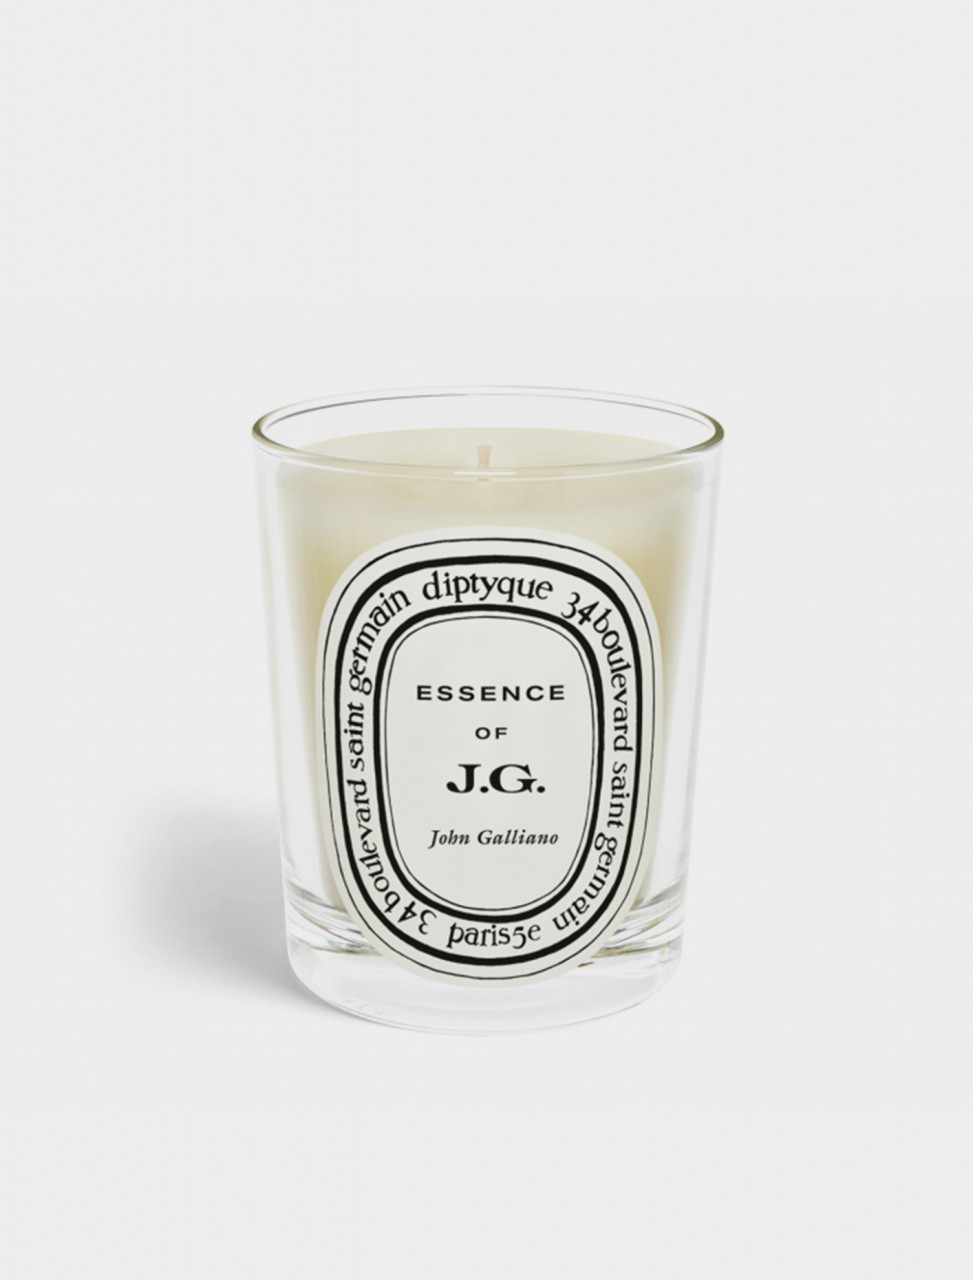 337-JG2 DIPTYQUE ESSENCE OF JOHN GALLIANO STANDARD CANDLE